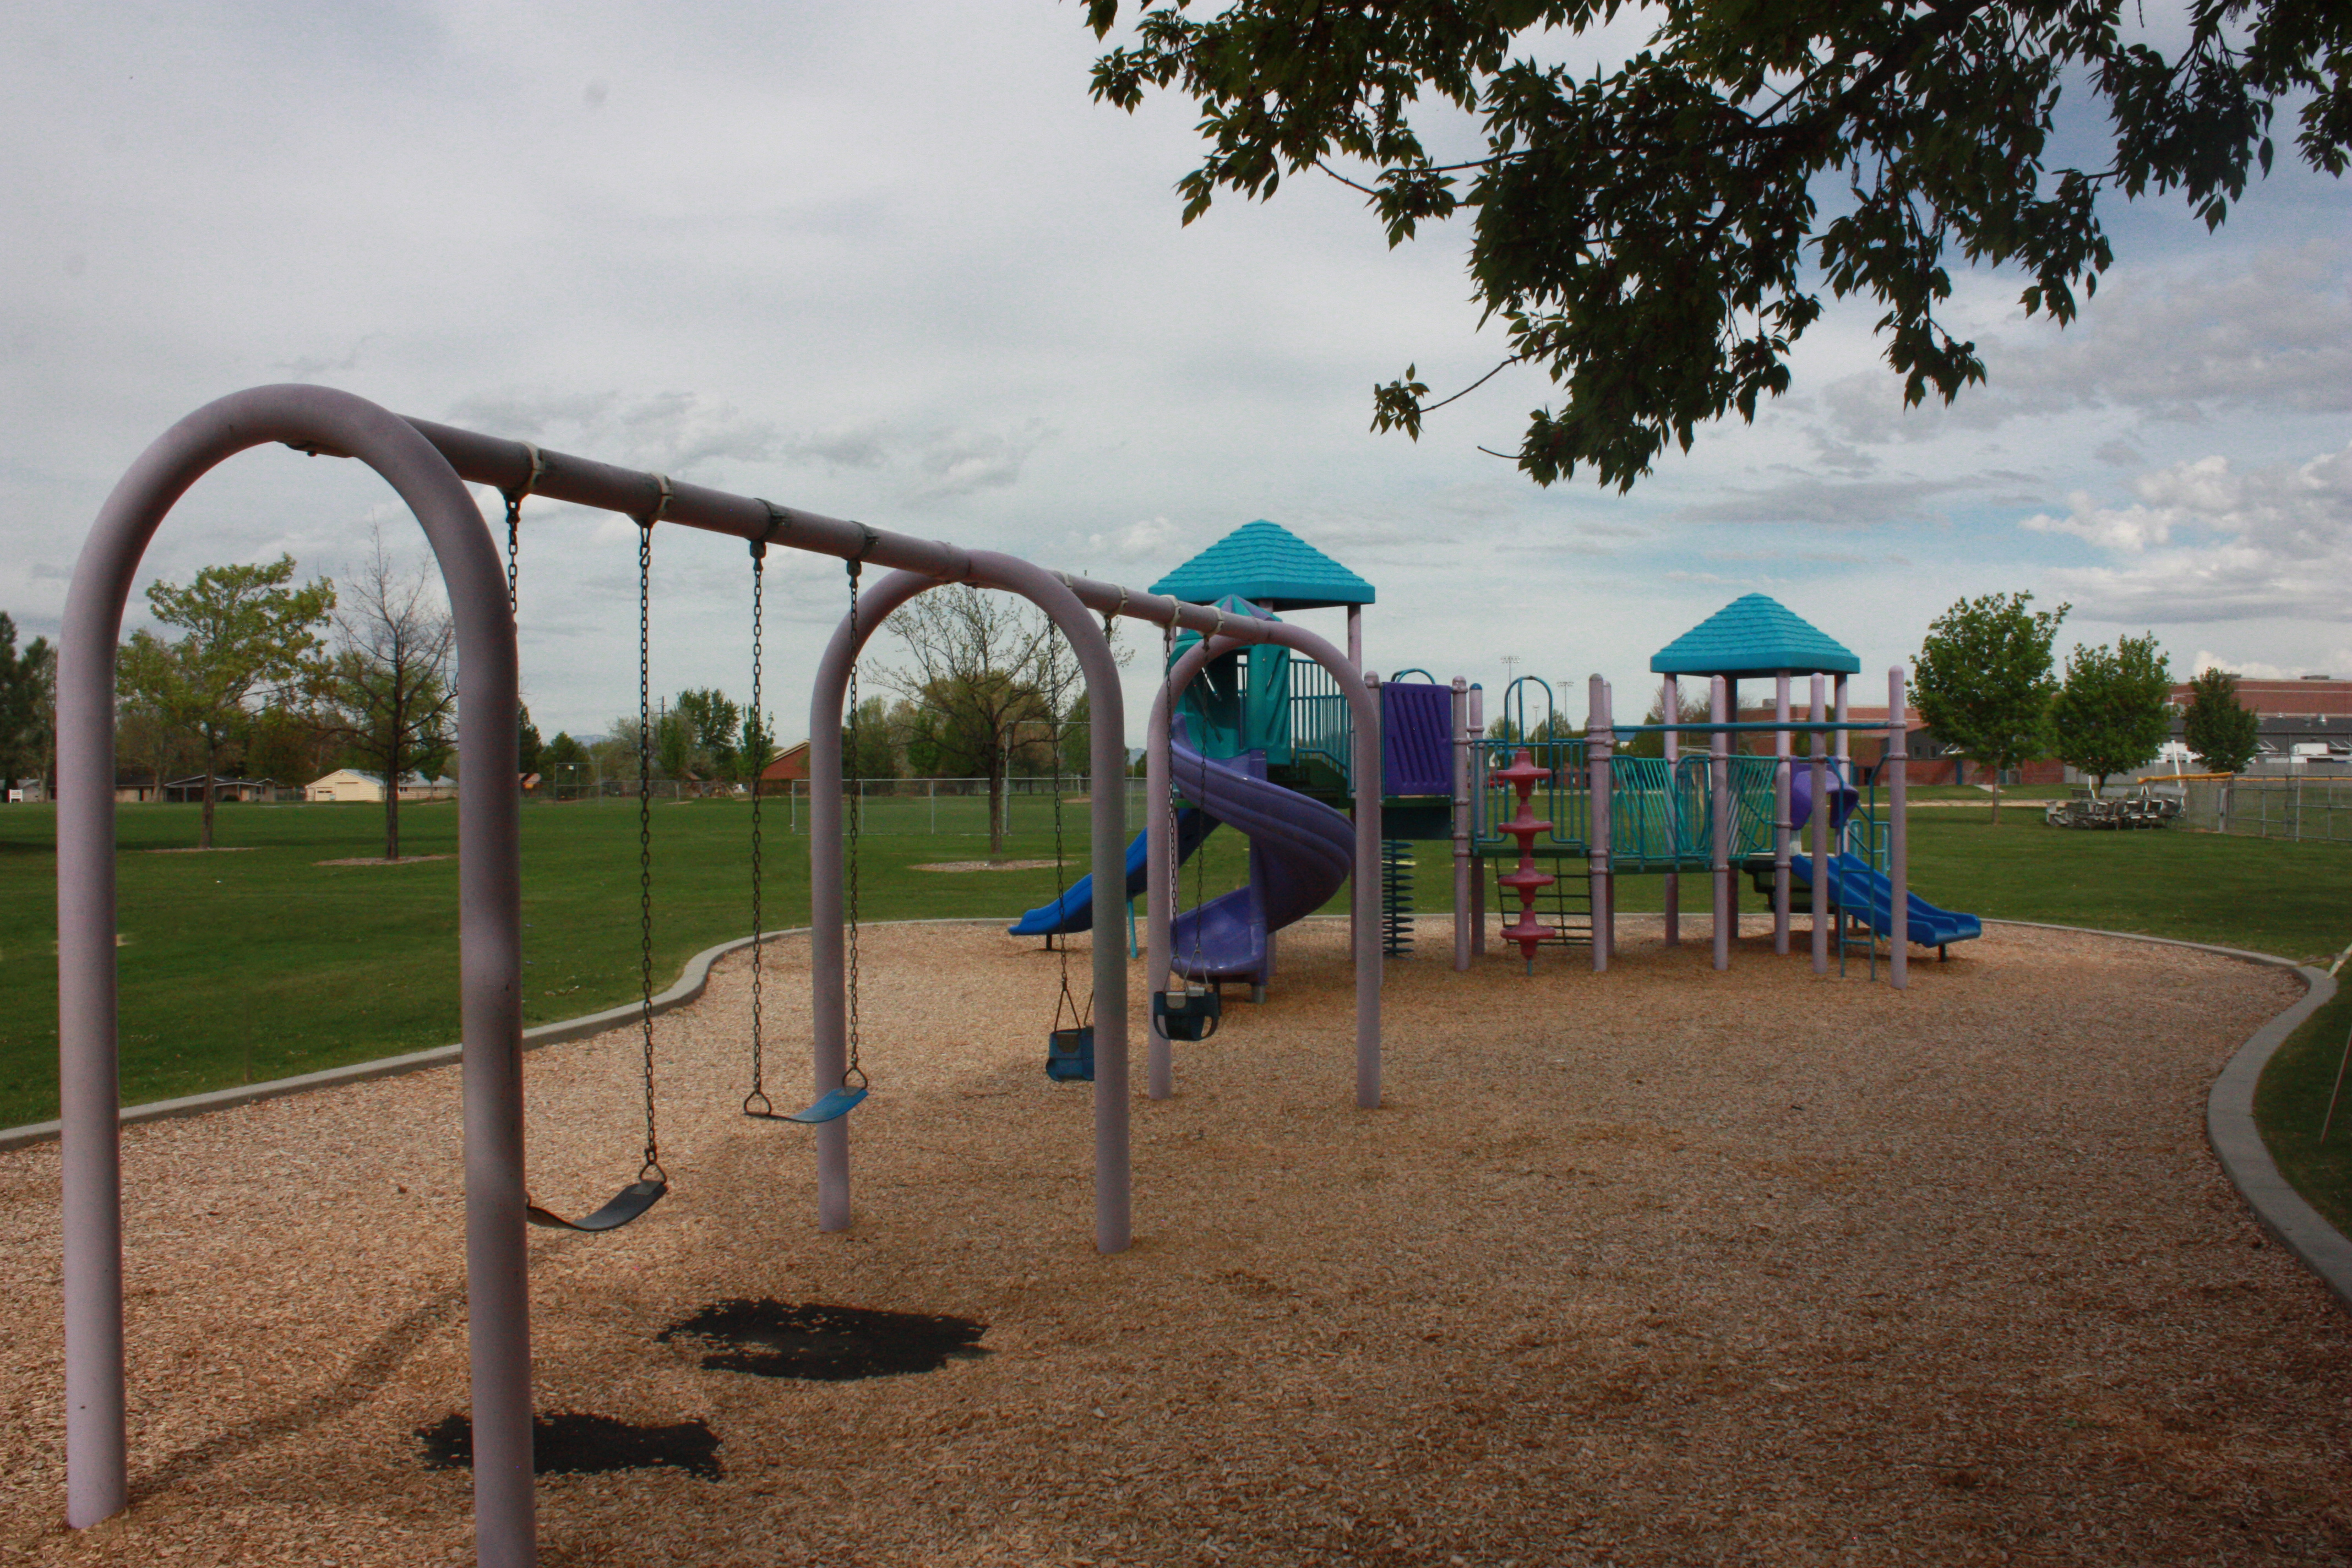 Four swings and a teal and purple play structure